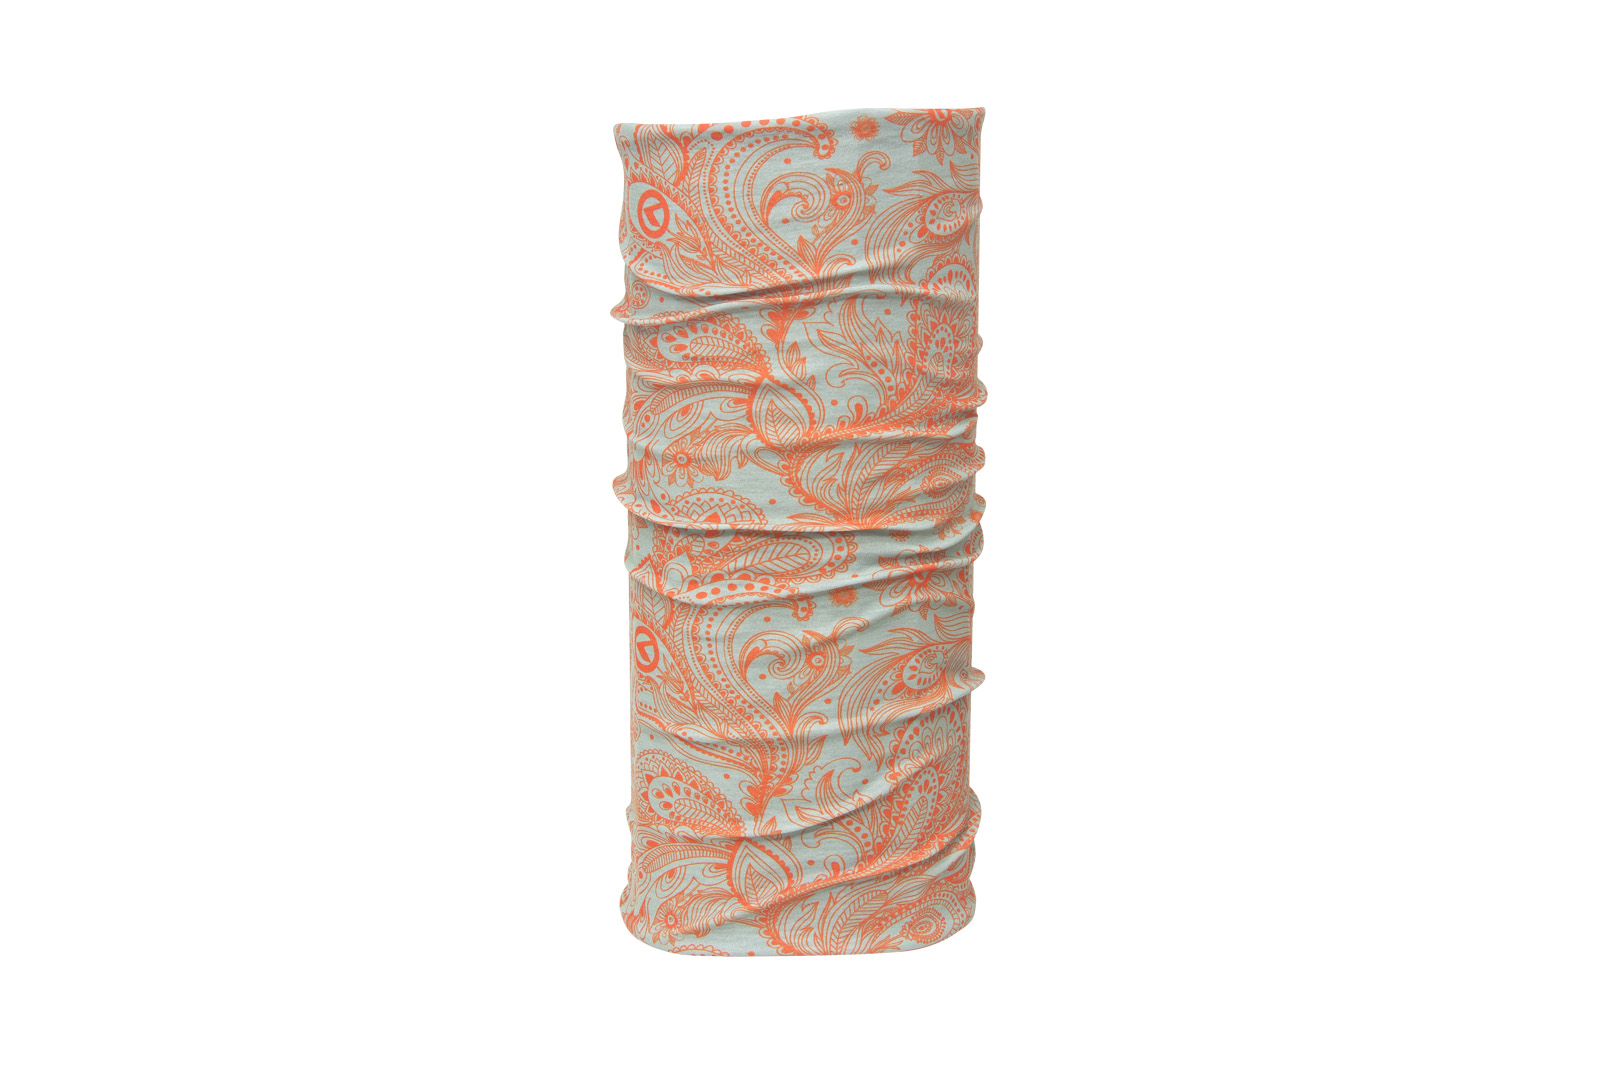 Multifunktionstuch KELLYS PAISLEY orange - Multifunktionstuch KELLYS PAISLEY orange